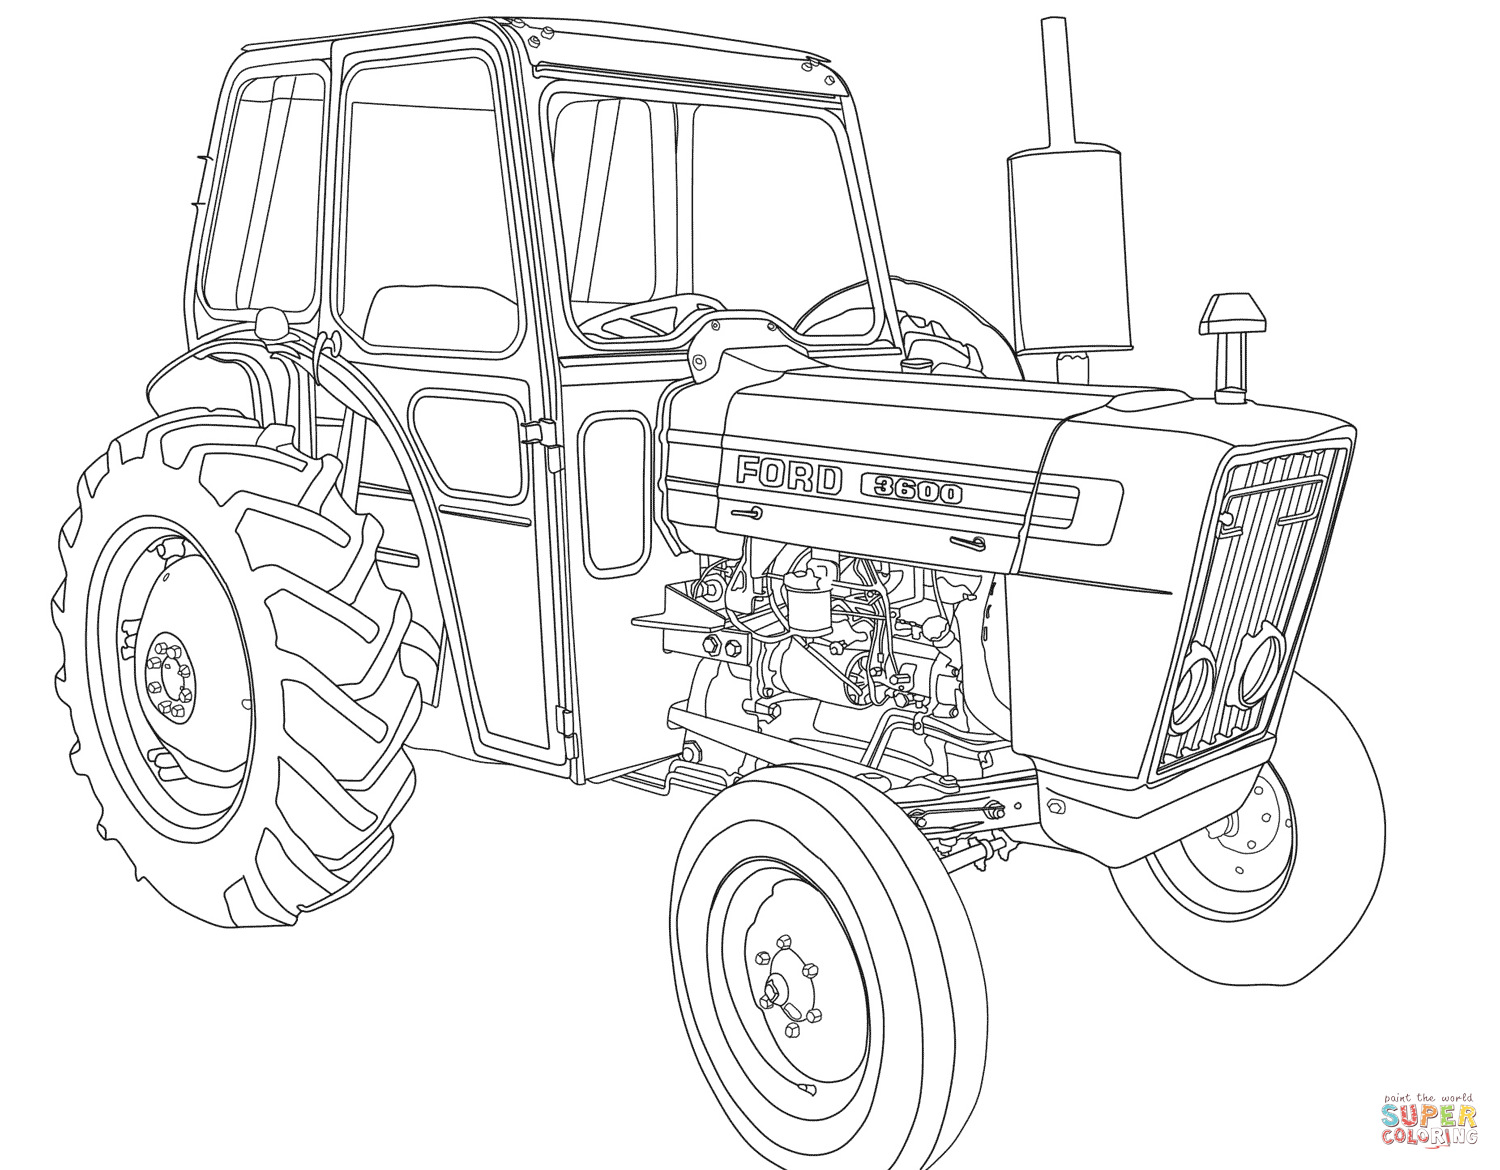 1500x1170 Tractor Ford 3600 Coloring Page Free Printable Coloring Pages